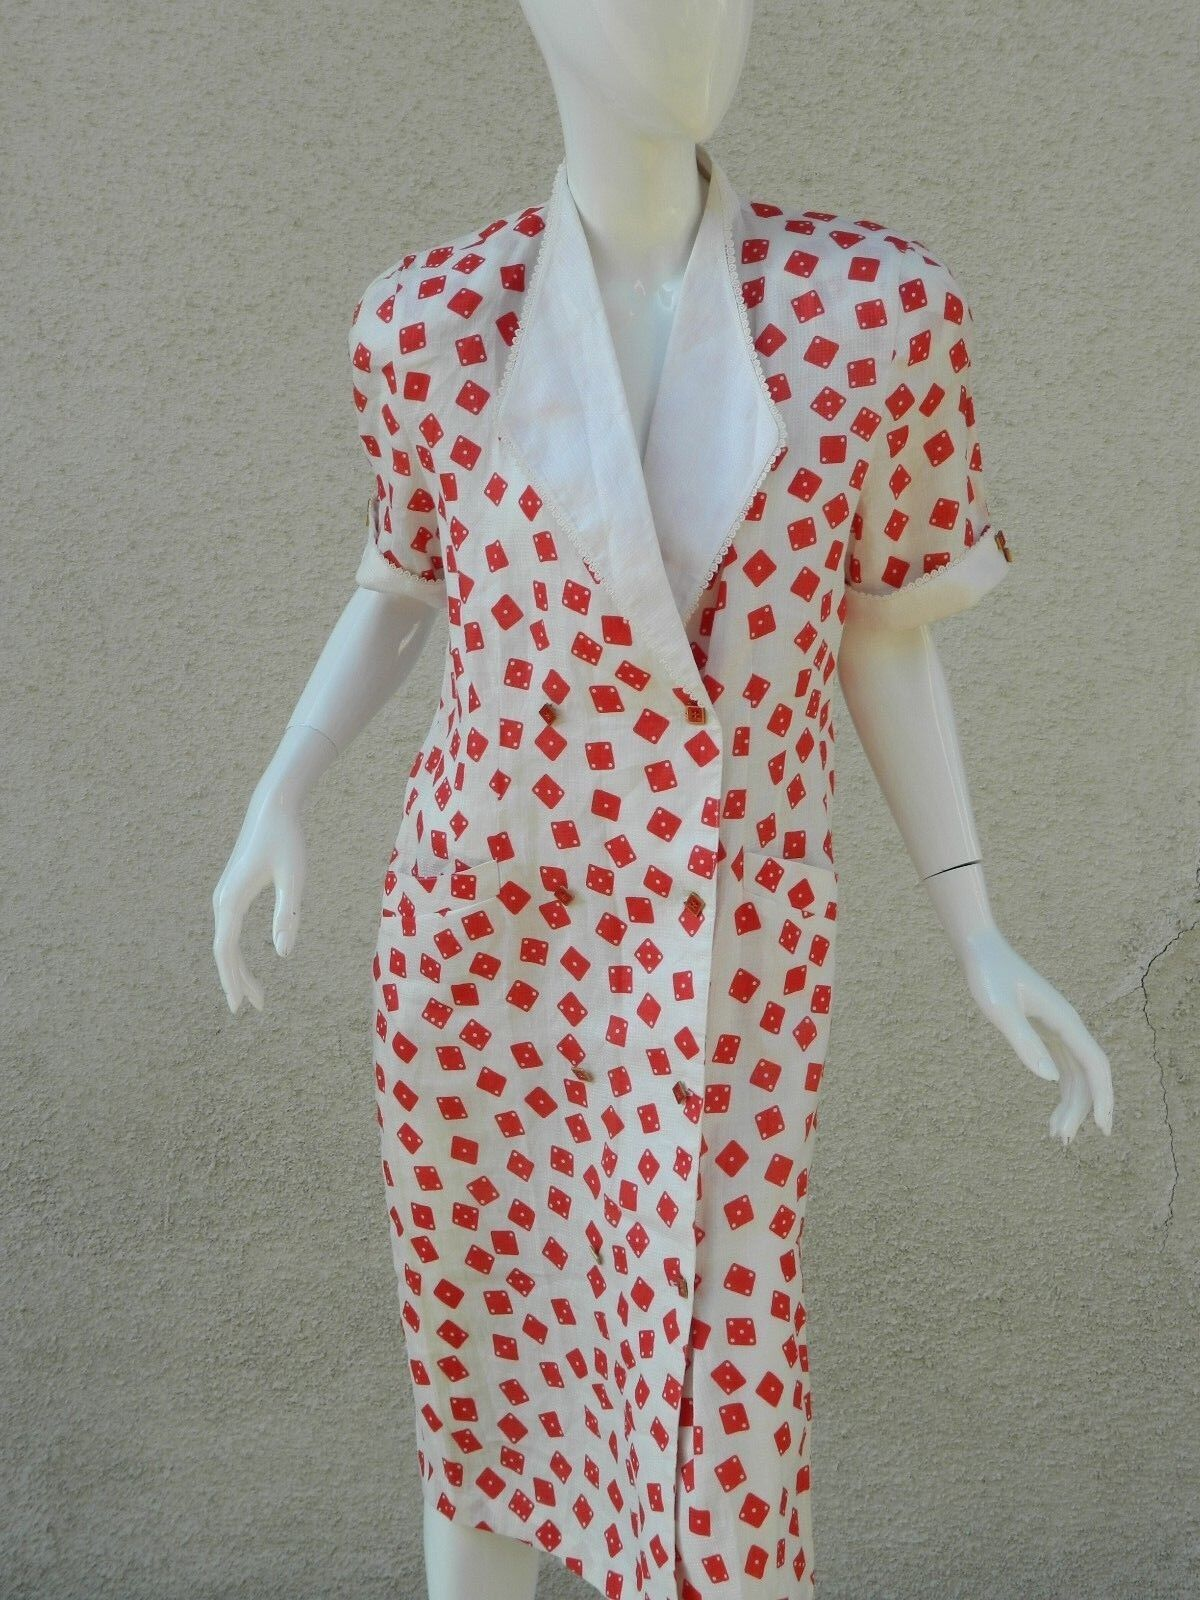 Vintage Catch Fire Dress Domino's Print rot and Weiß 1980s Sz M L